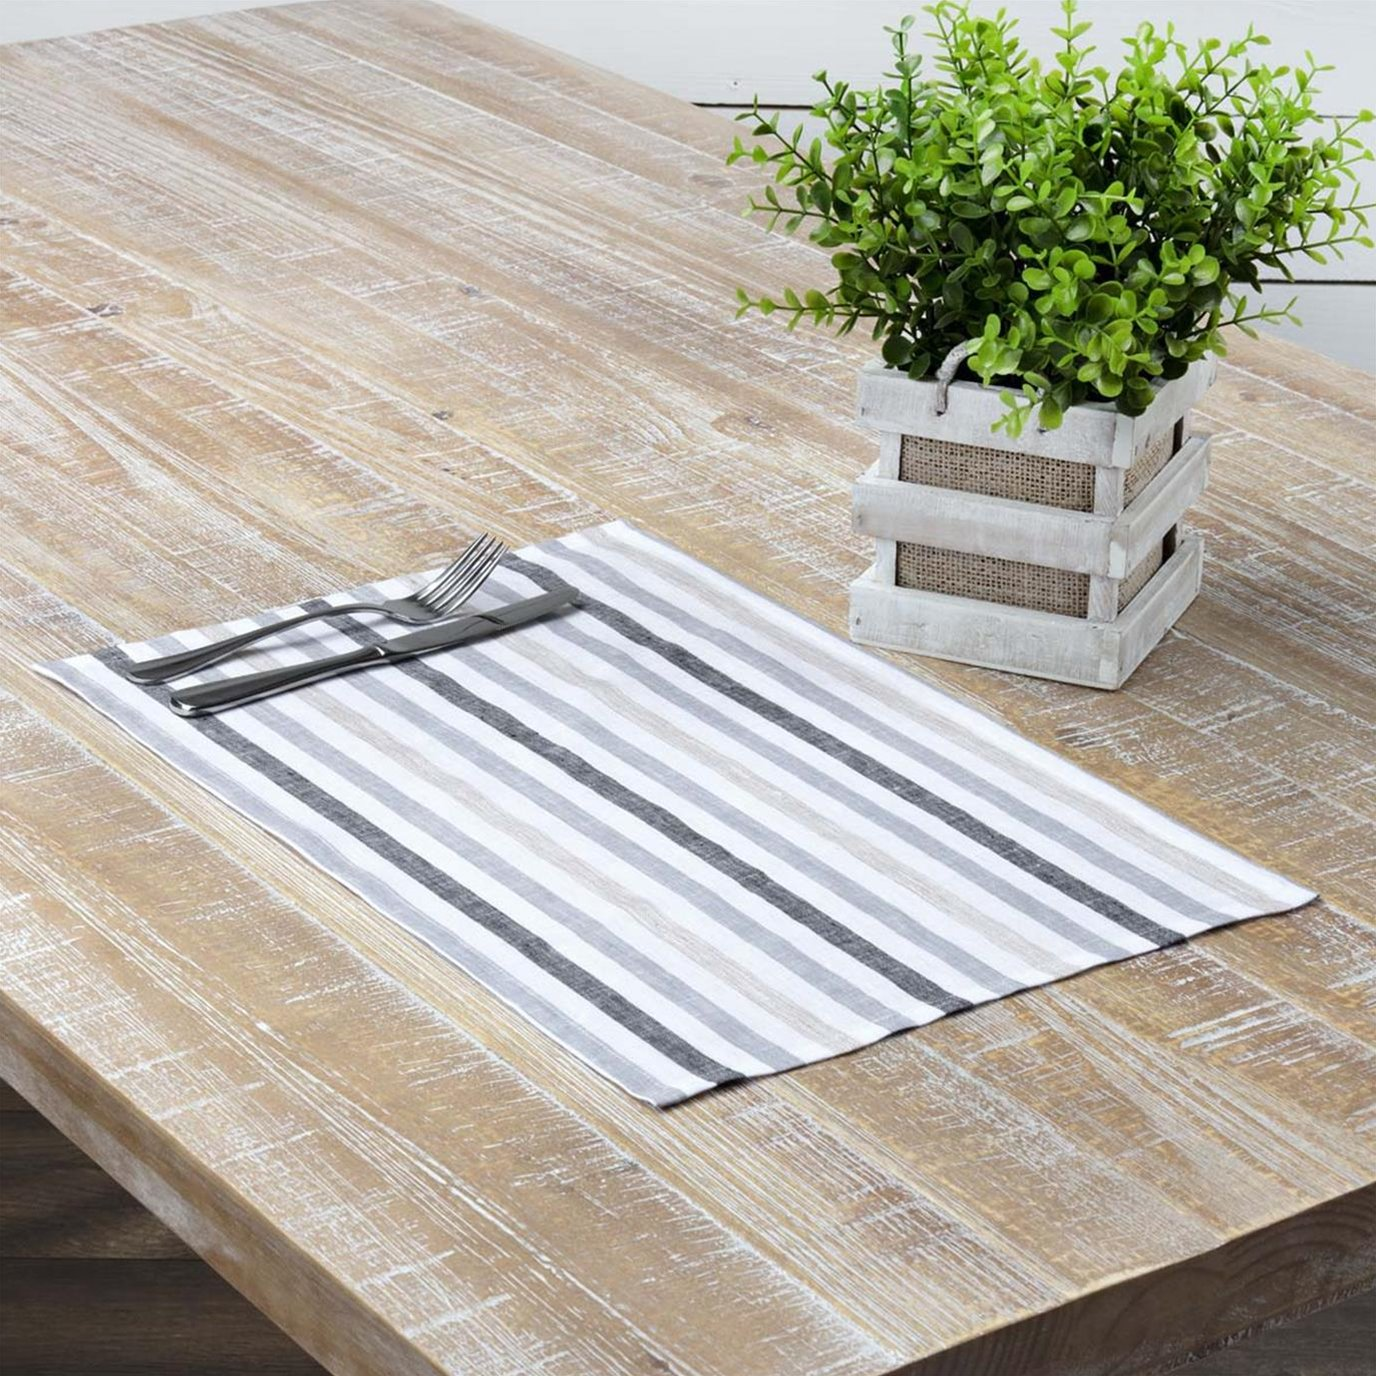 Blake Grey Placemat Set of 6 12x18